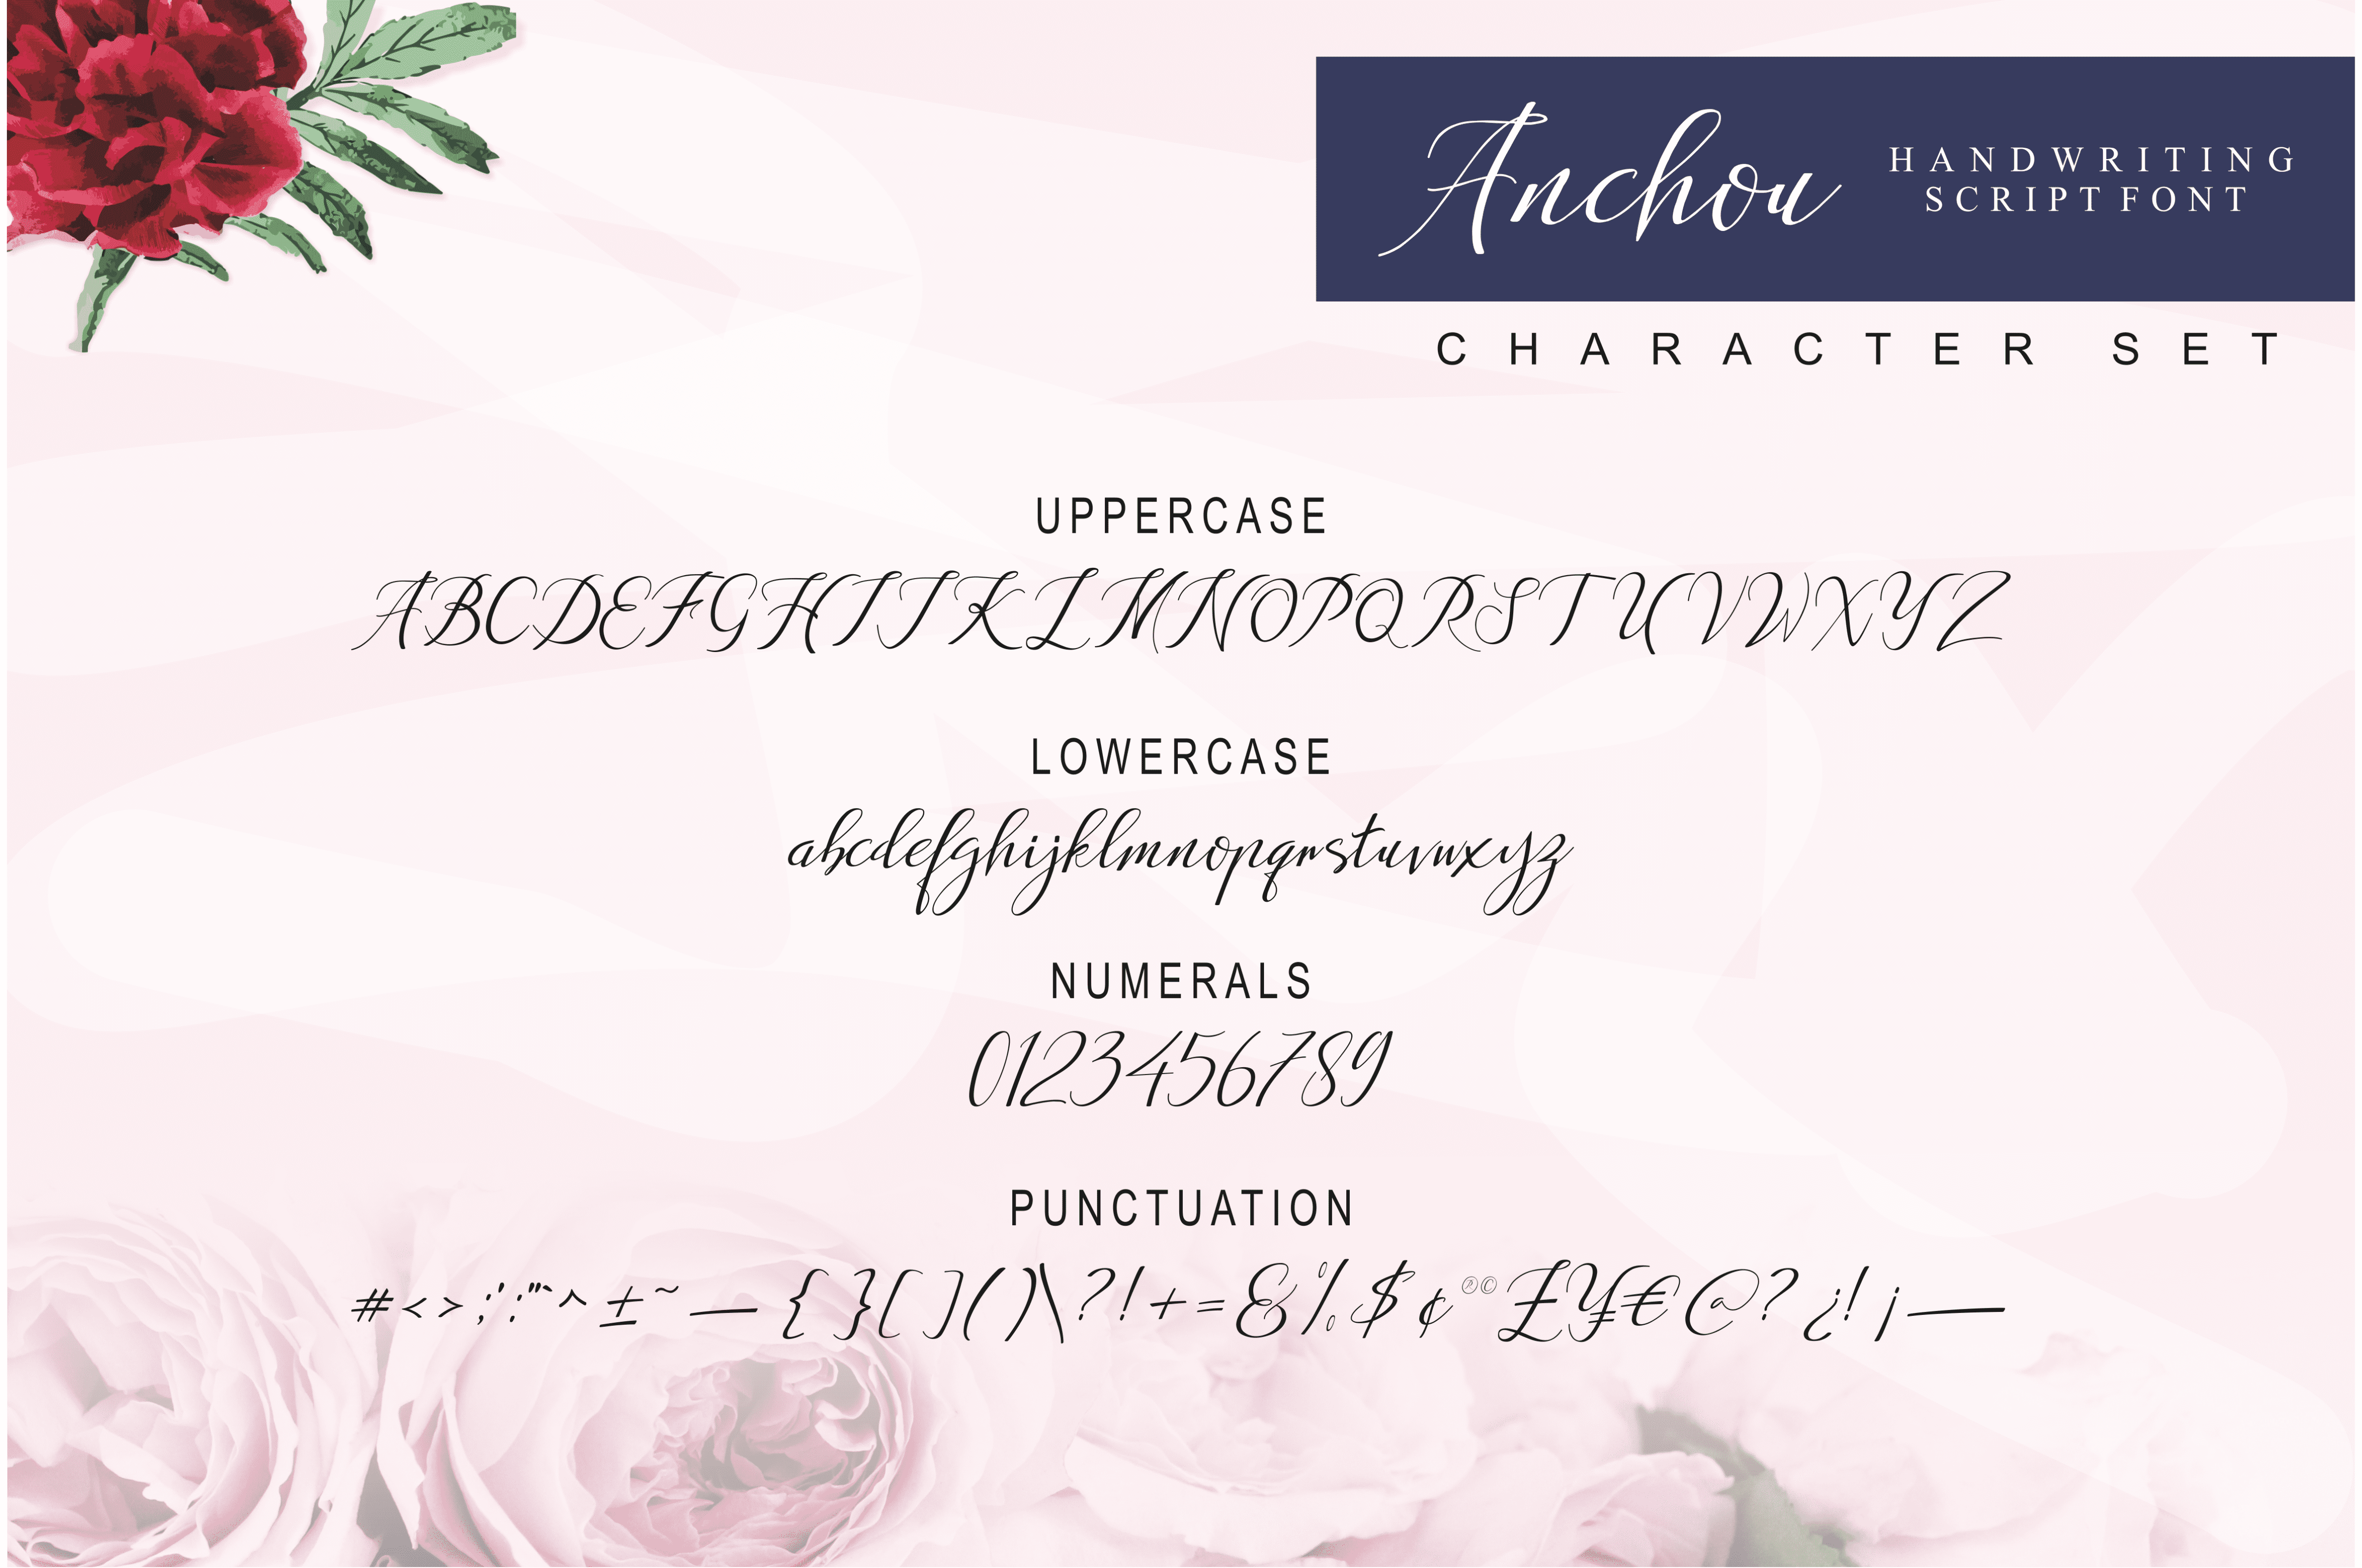 Anchou Beautiful Handwriting Font - $2 - View8